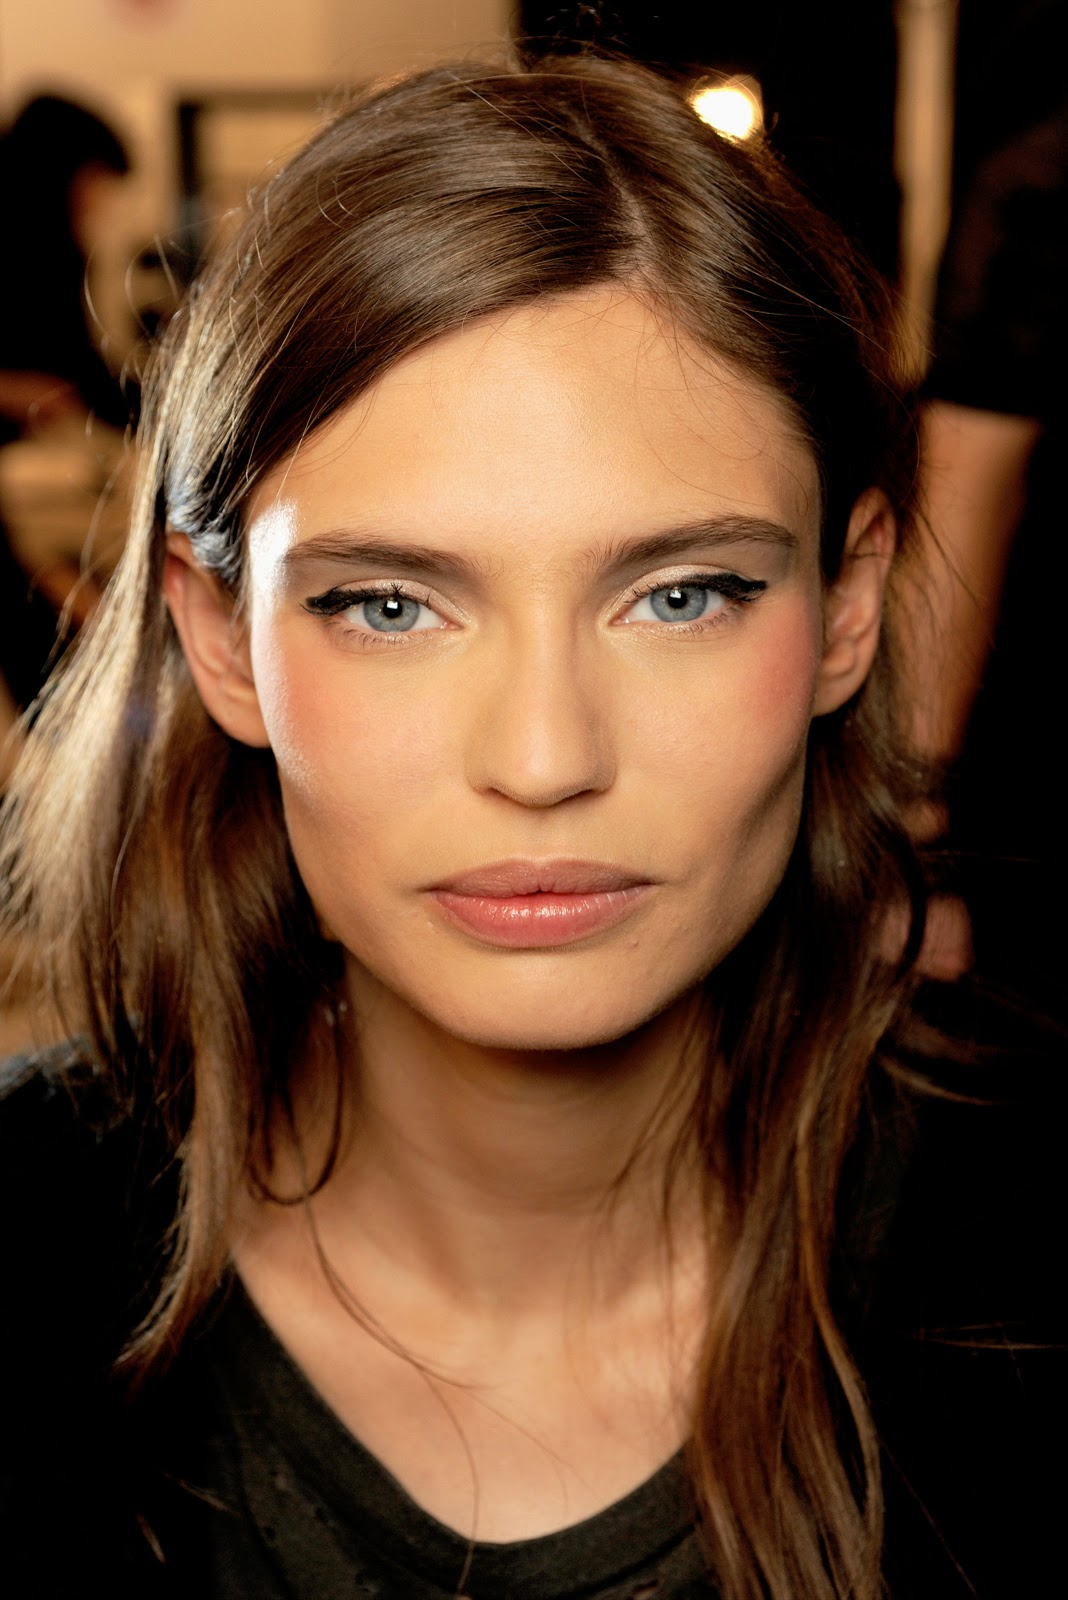 12 Models with Prominent Cheekbones - The Front Row View